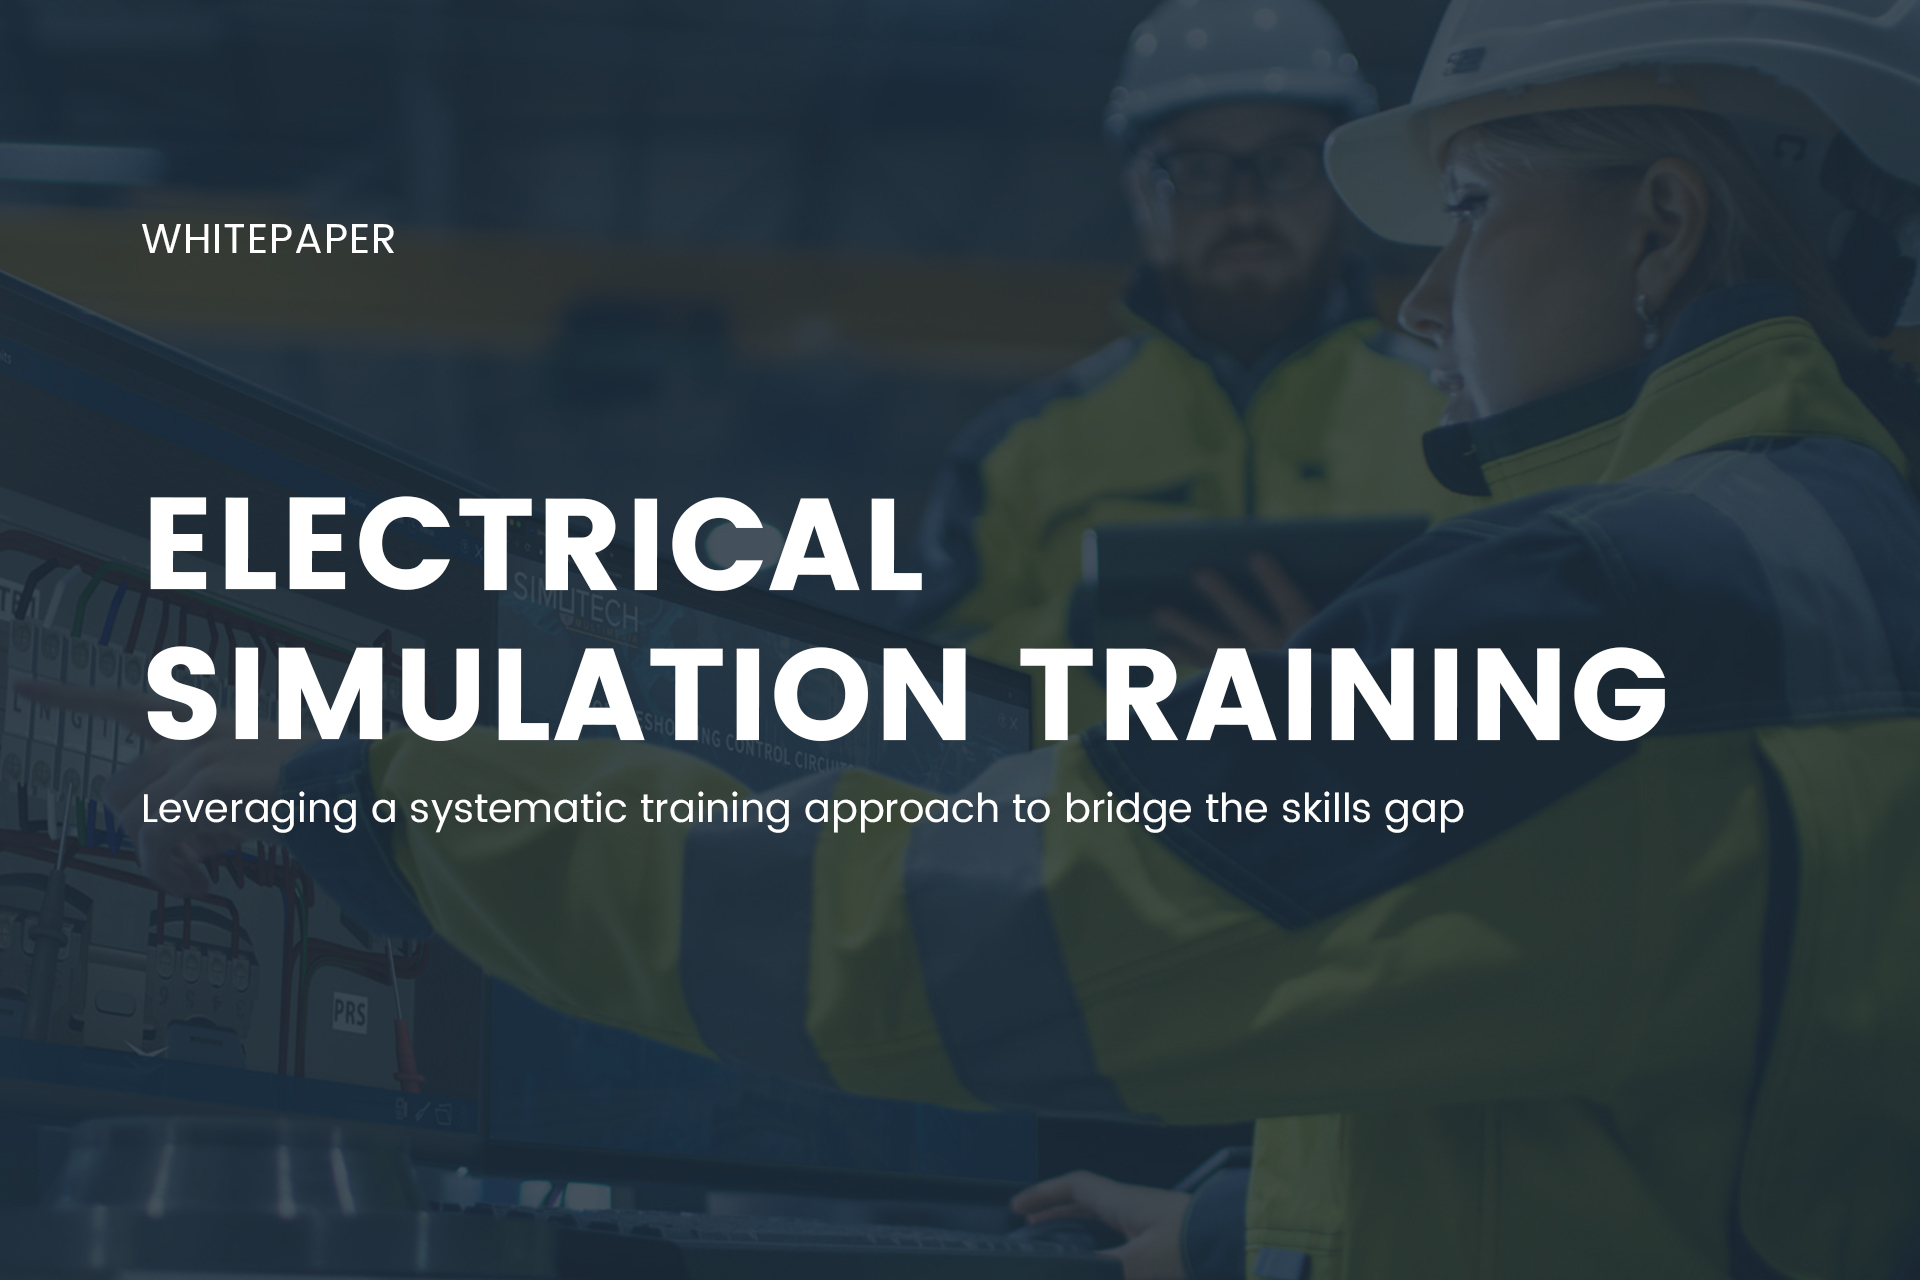 [Whitepaper] Leveraging Electrical Simulation Training To Bridge the Skills Gap